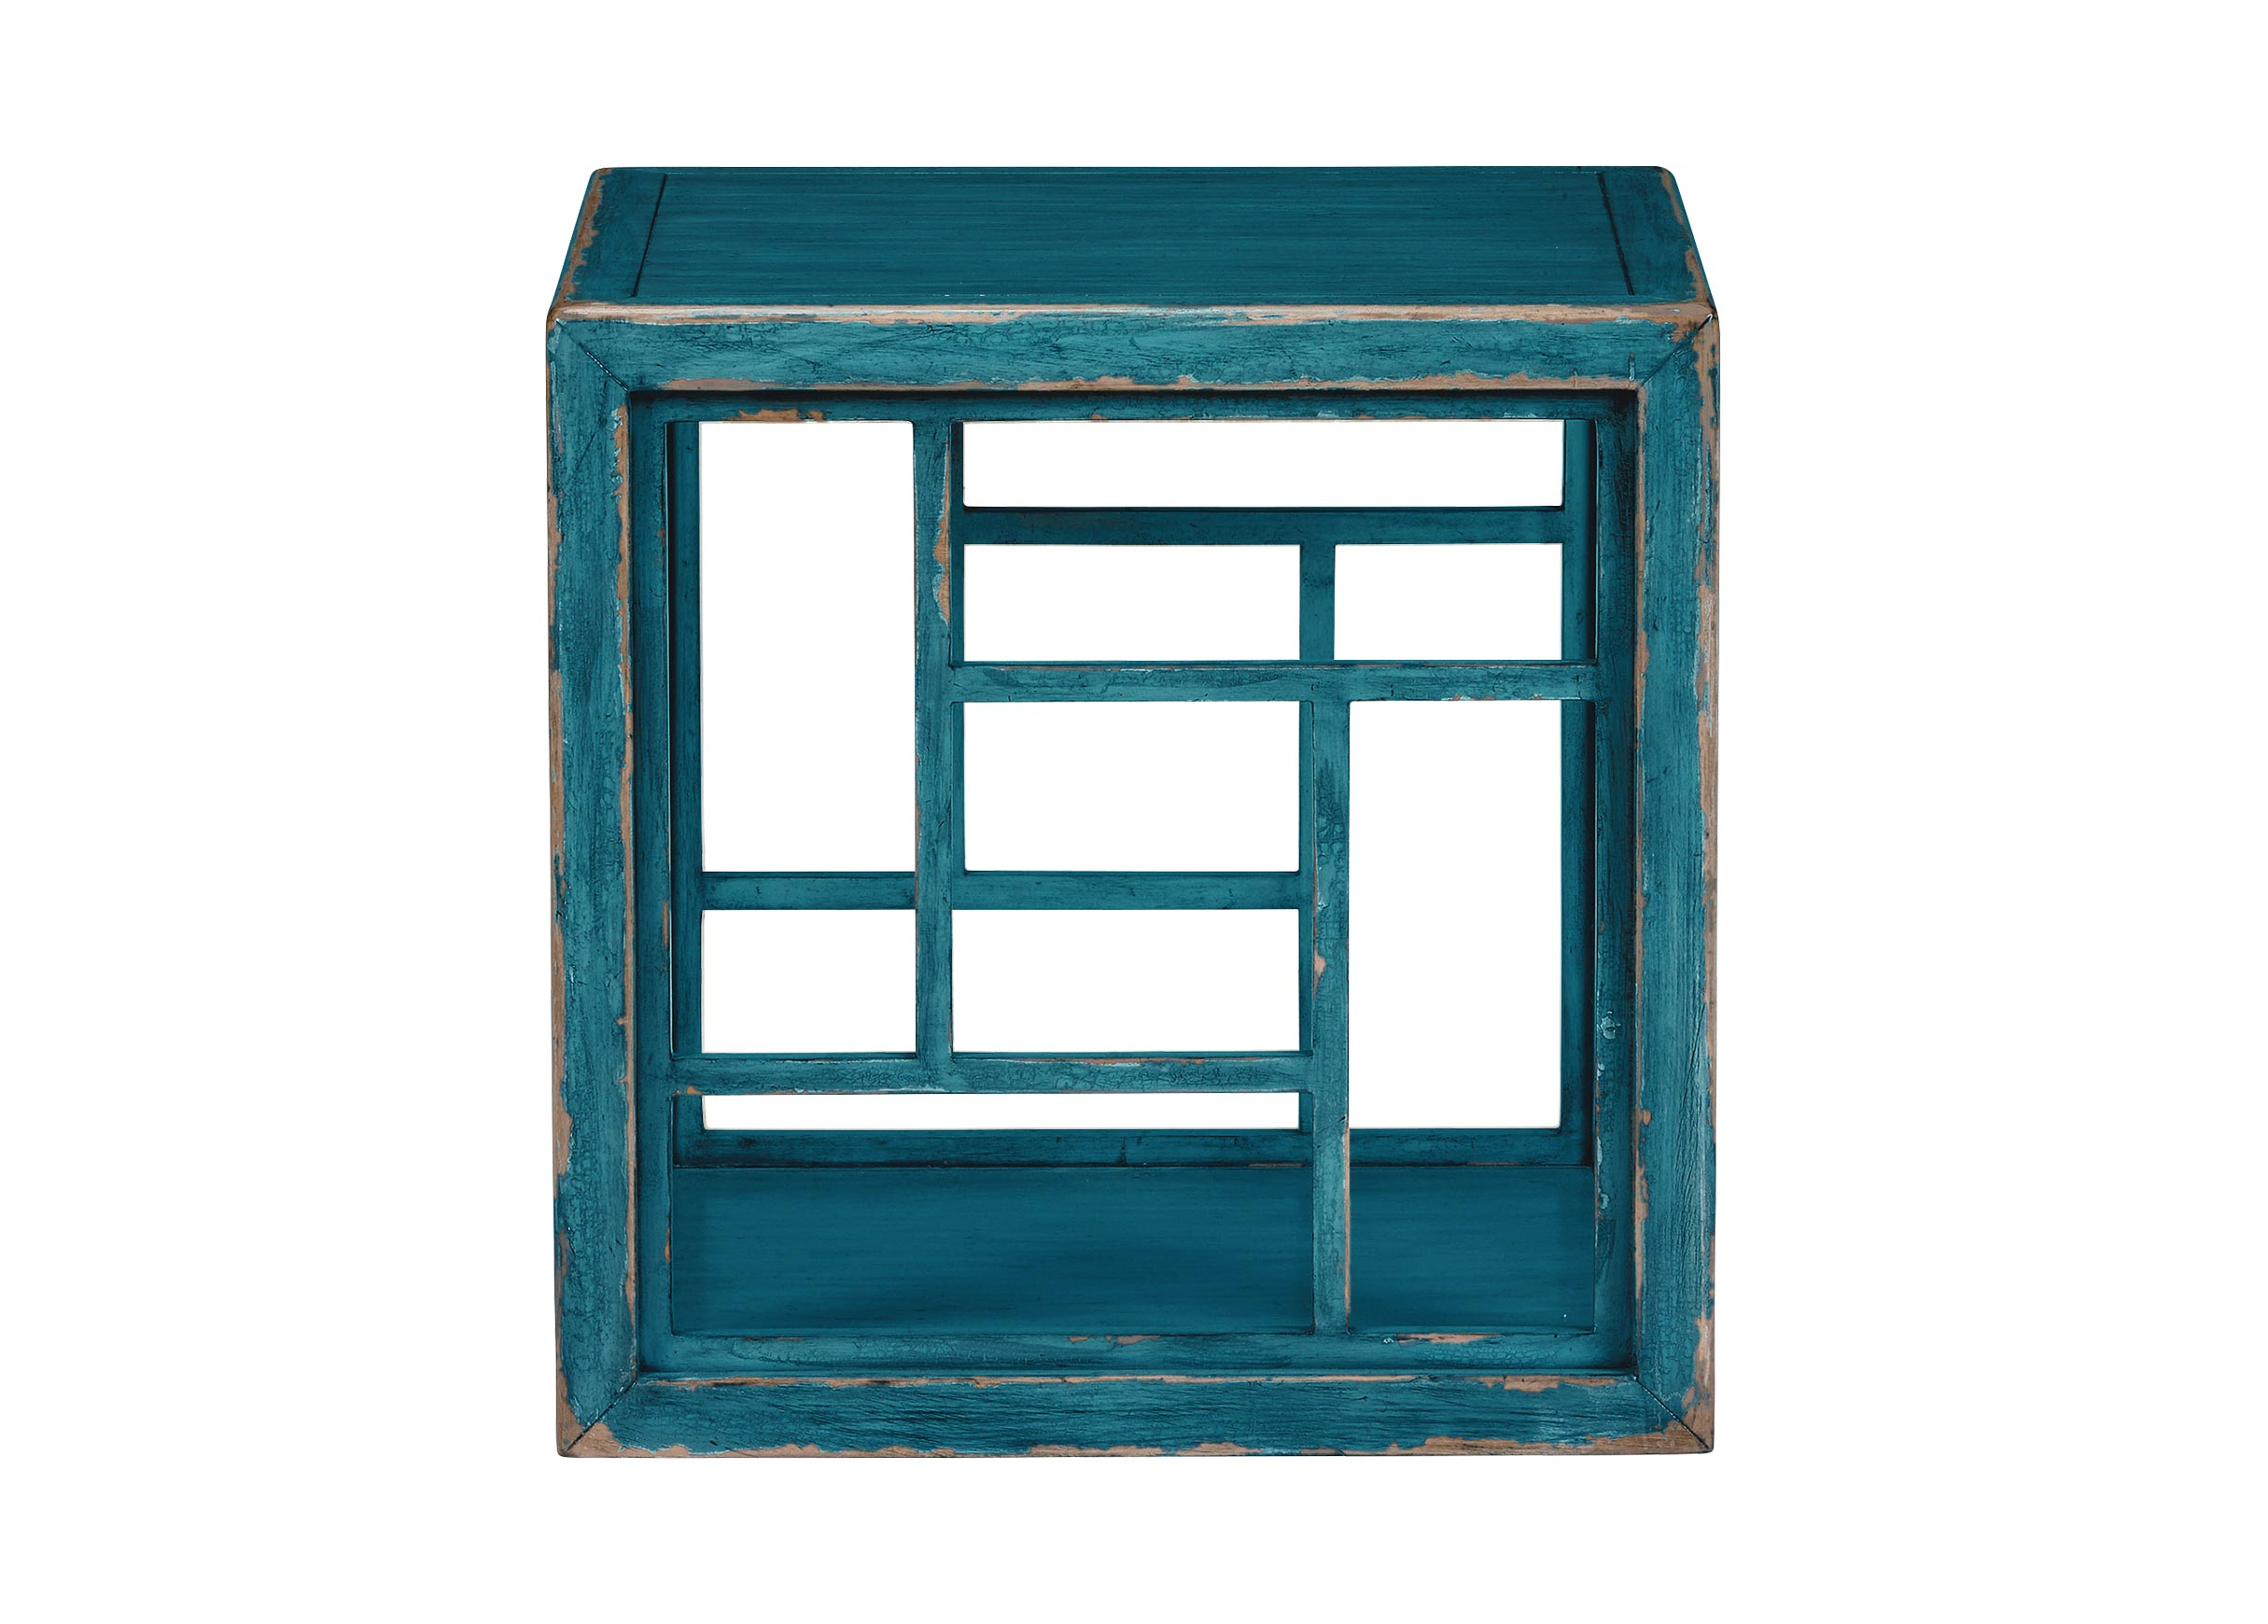 dynasty fretwork side table accent tables ethan allen front blue previous diy sofa driftwood west elm free shipping coupon code ceramic cloth oriental style lamps grey geometric